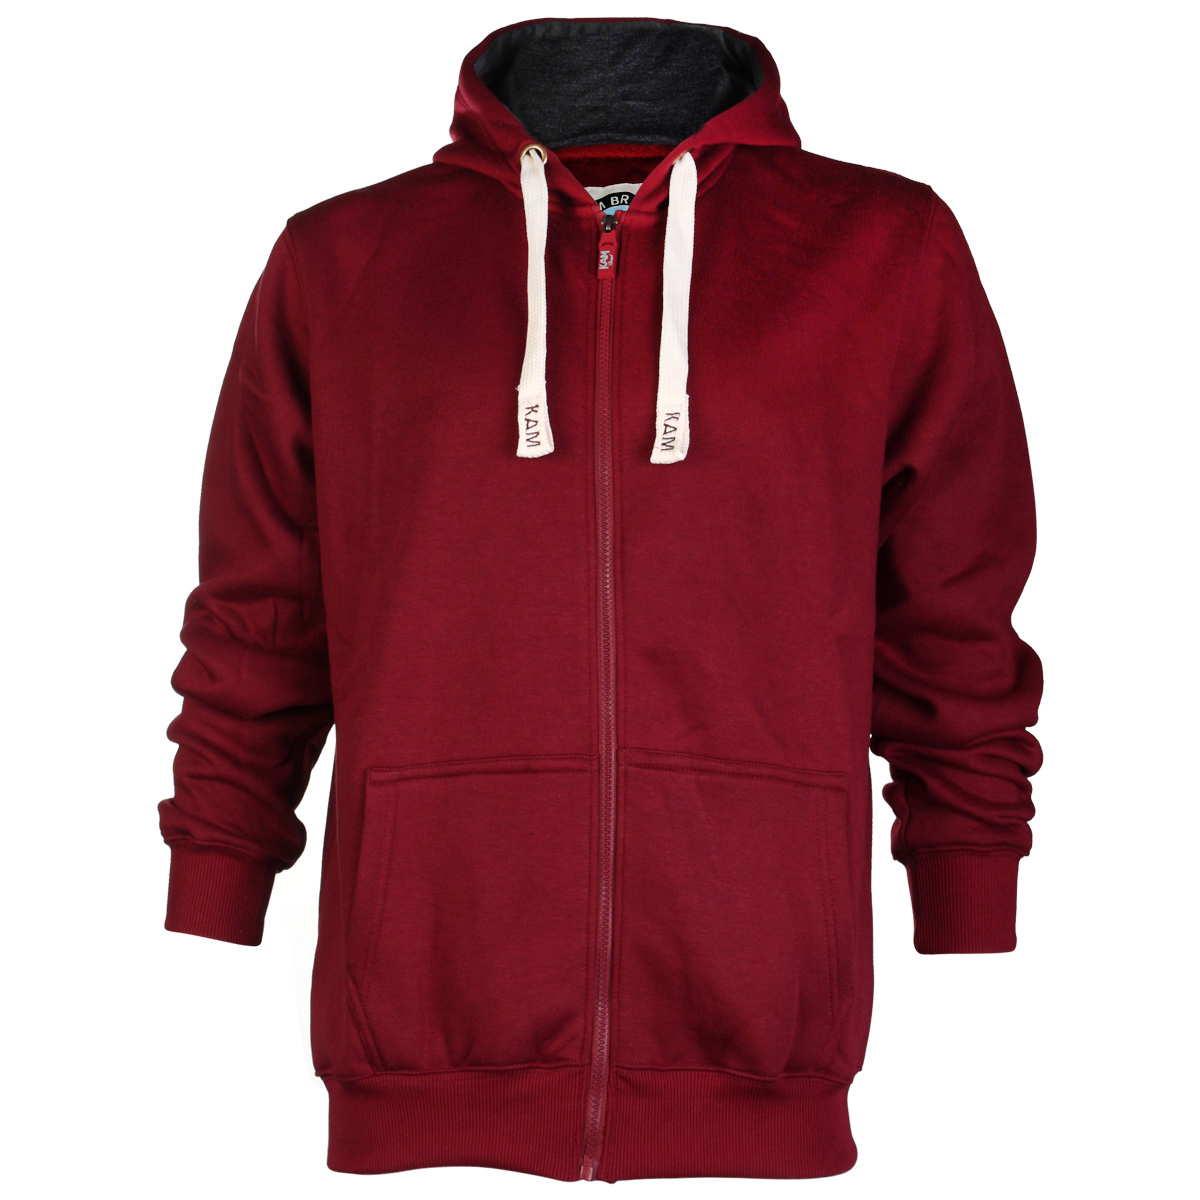 E20 NEW MENS KAM JEANS K503H ZIP UP HOODY HOODED FLEECE JACKET TOP ...